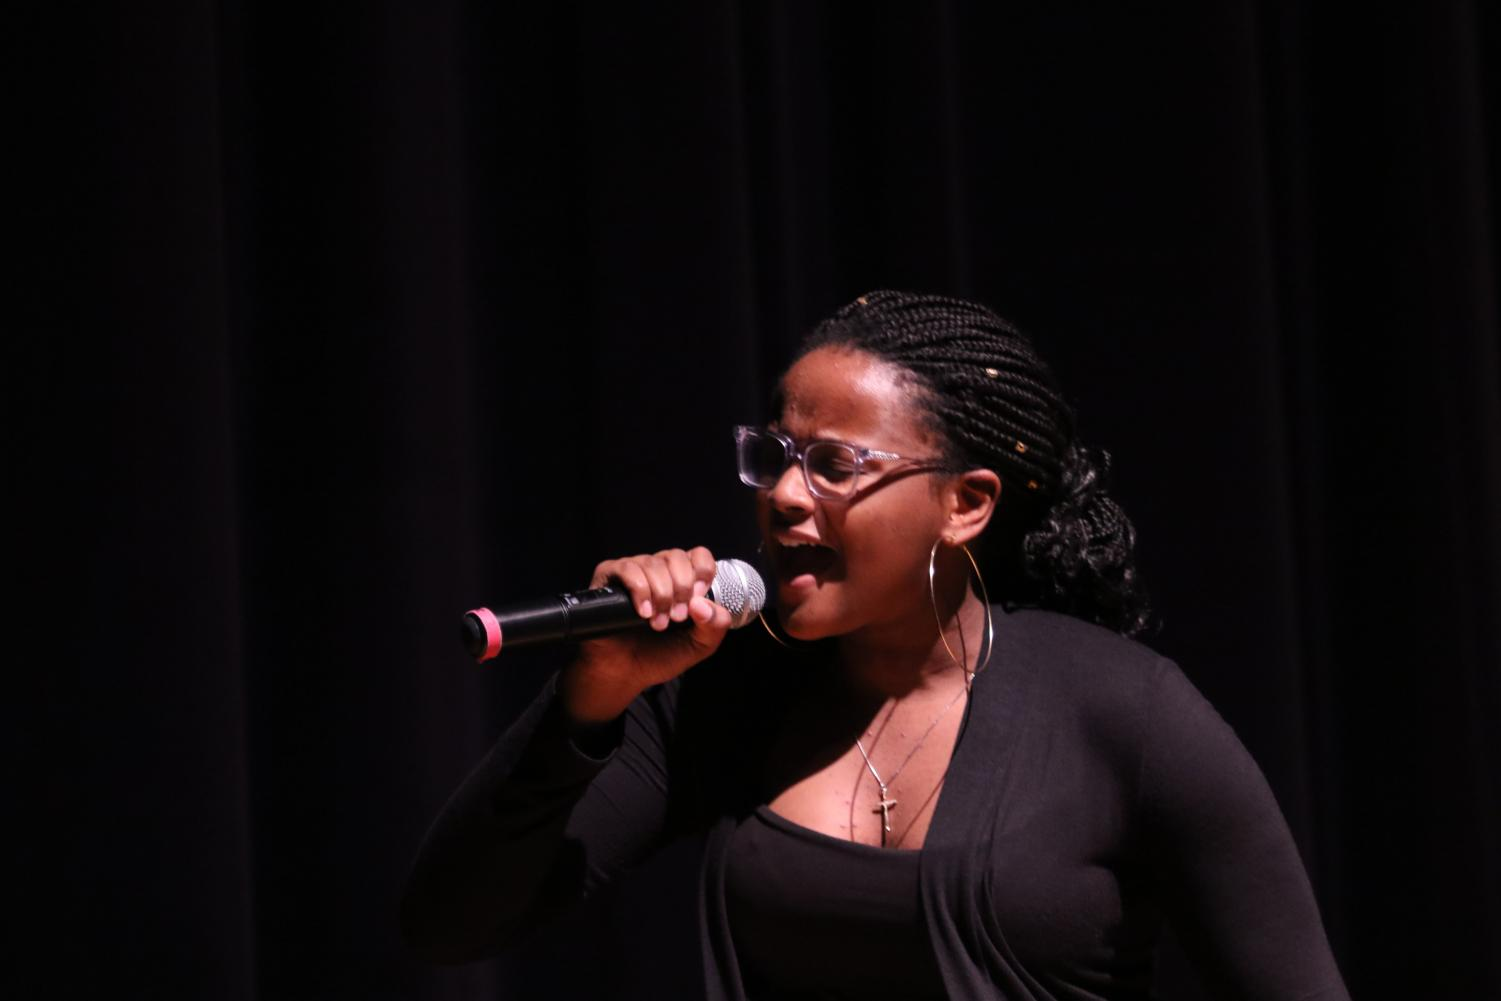 Junior Esther Manson sings V.S.O.P. by K. Mitchelle at the annual BSU Talent Show. The talent show also included dance and spoken word performances.